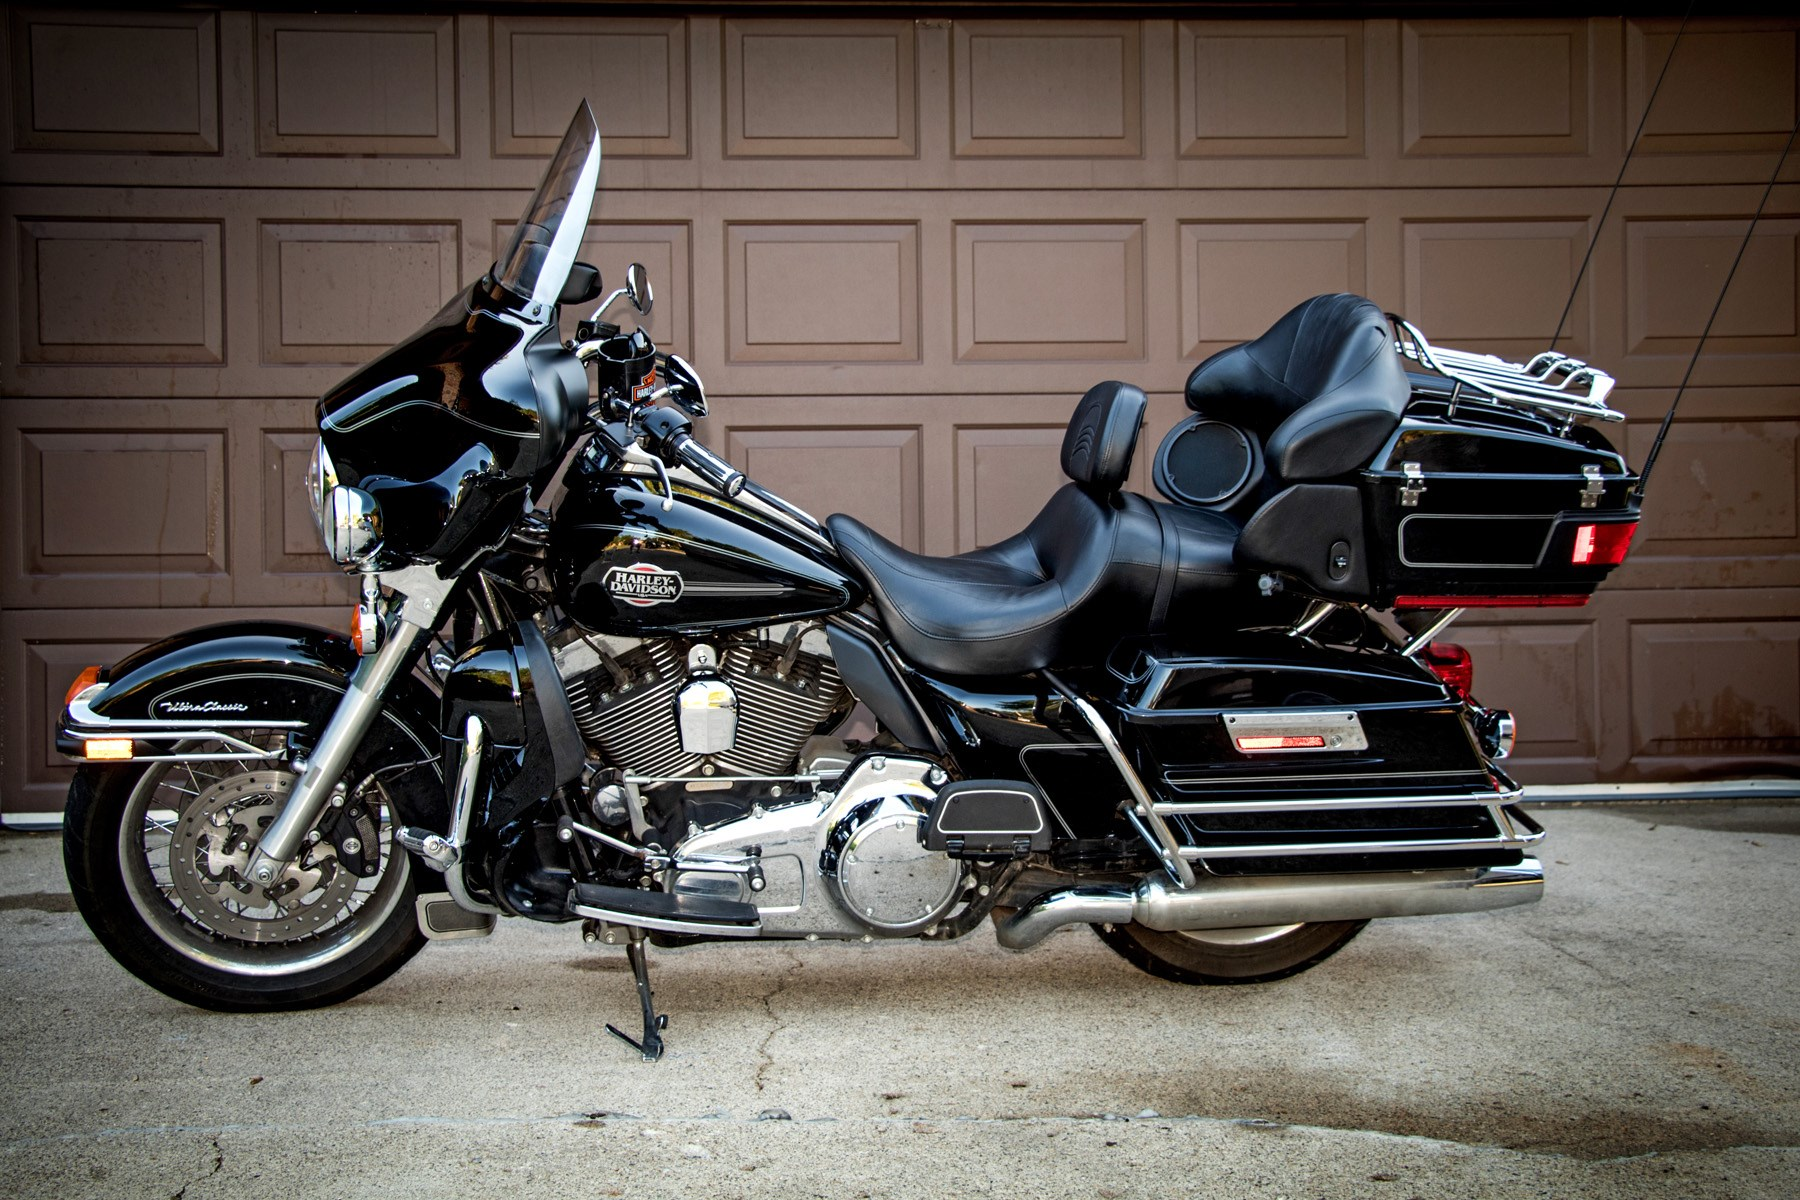 2010 harley davidson flhtcu ultra classic electra glide black worthington minnesota. Black Bedroom Furniture Sets. Home Design Ideas